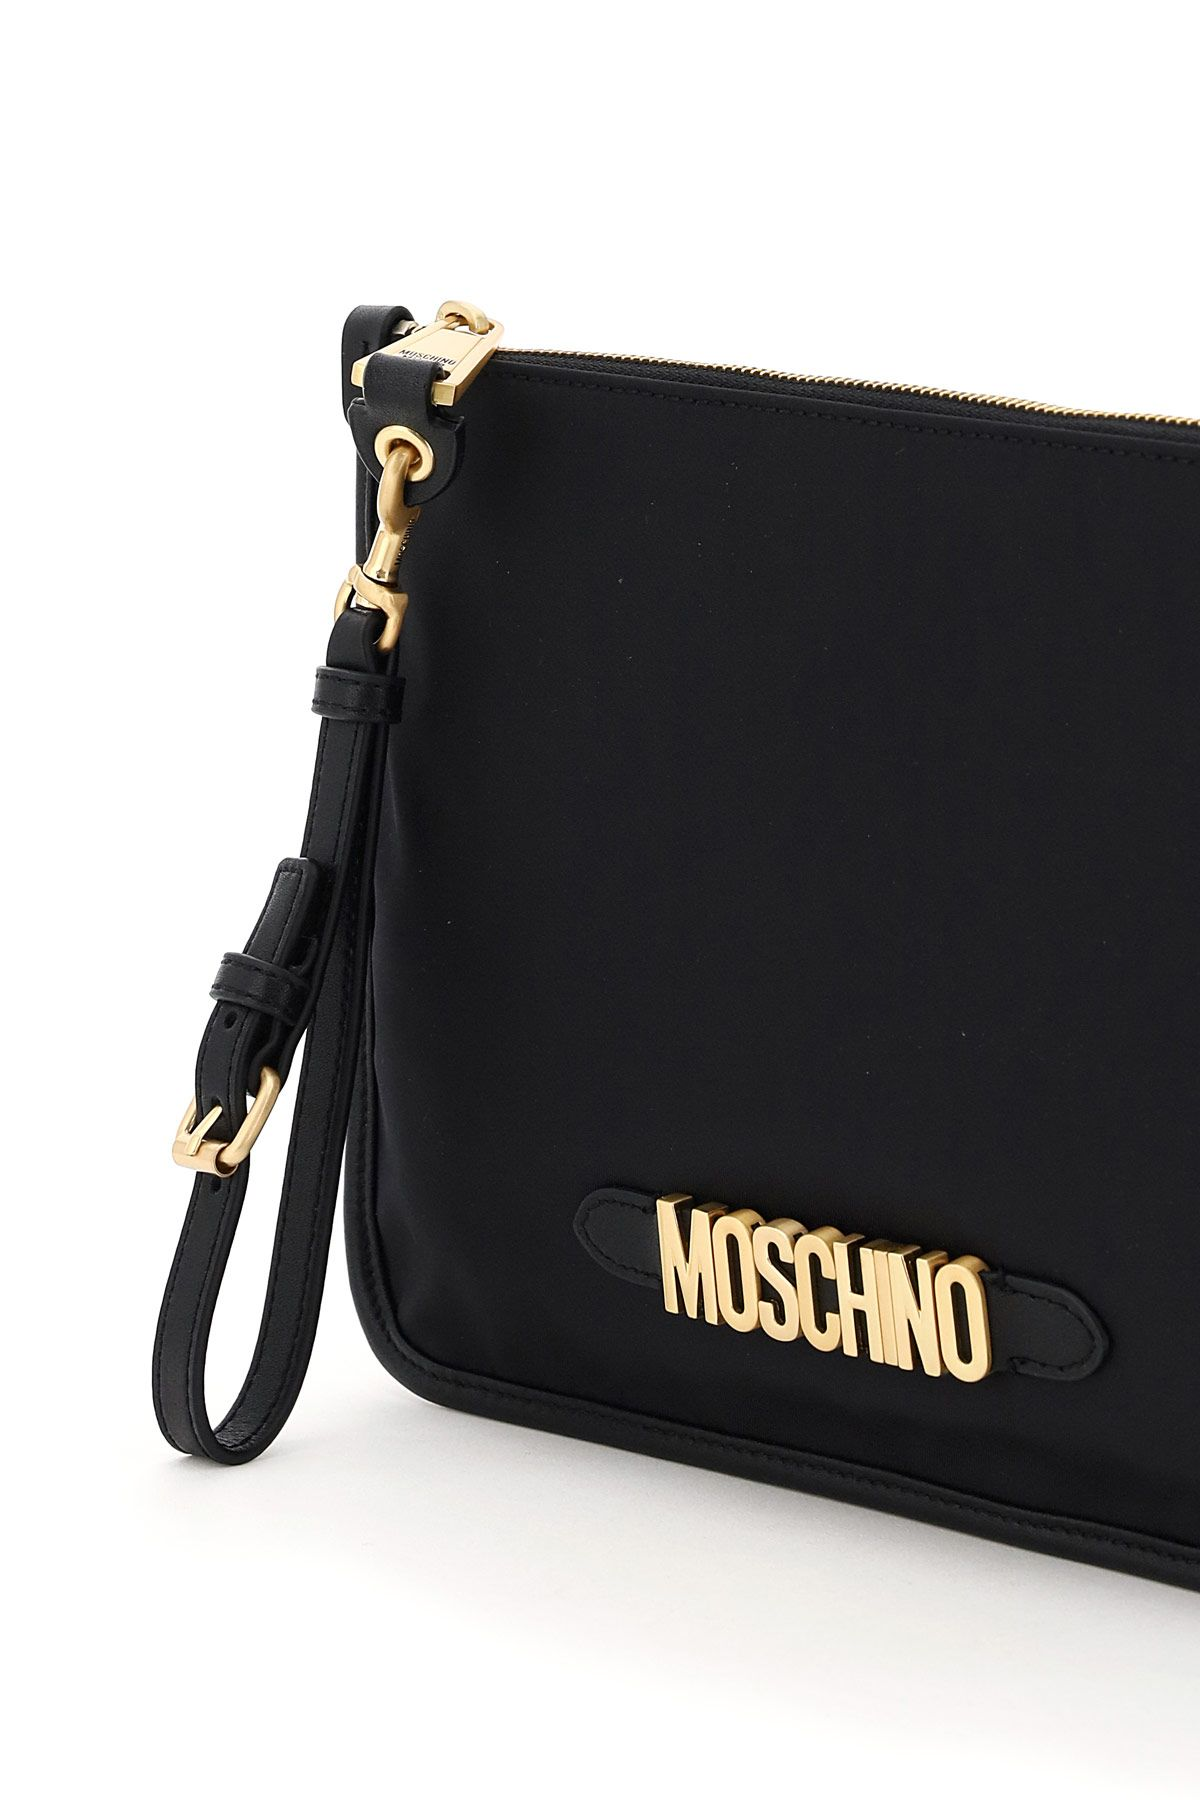 moschino bags women fabric pouch moschino lettering